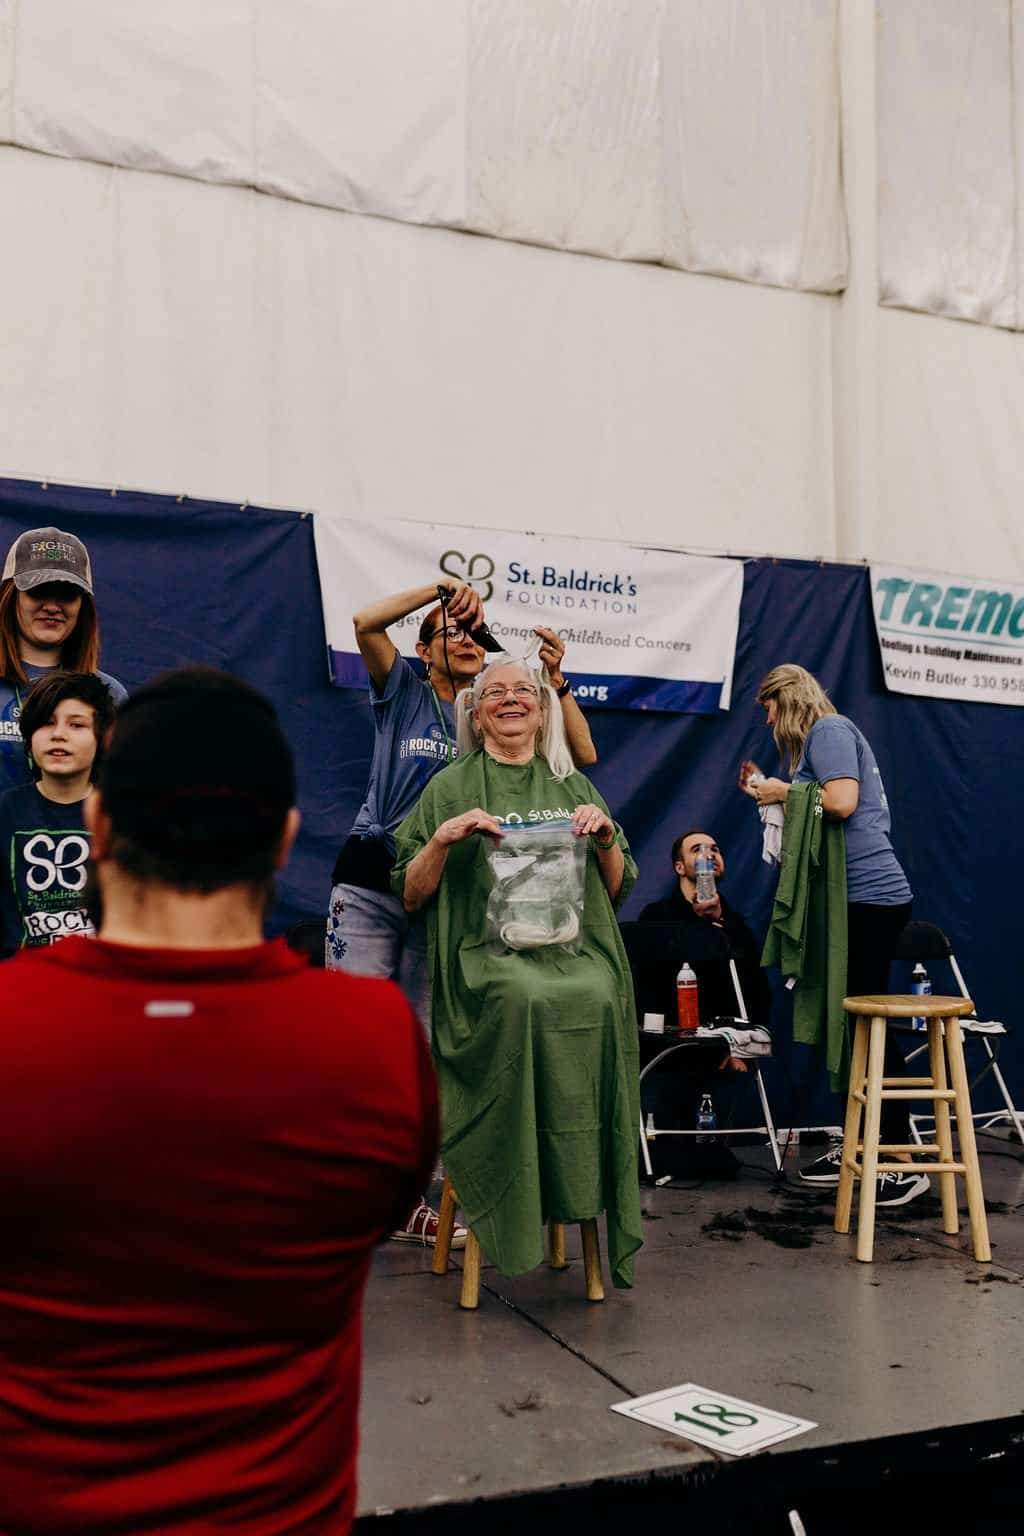 St. Baldricks | I bet you wouldn't shave your head 232